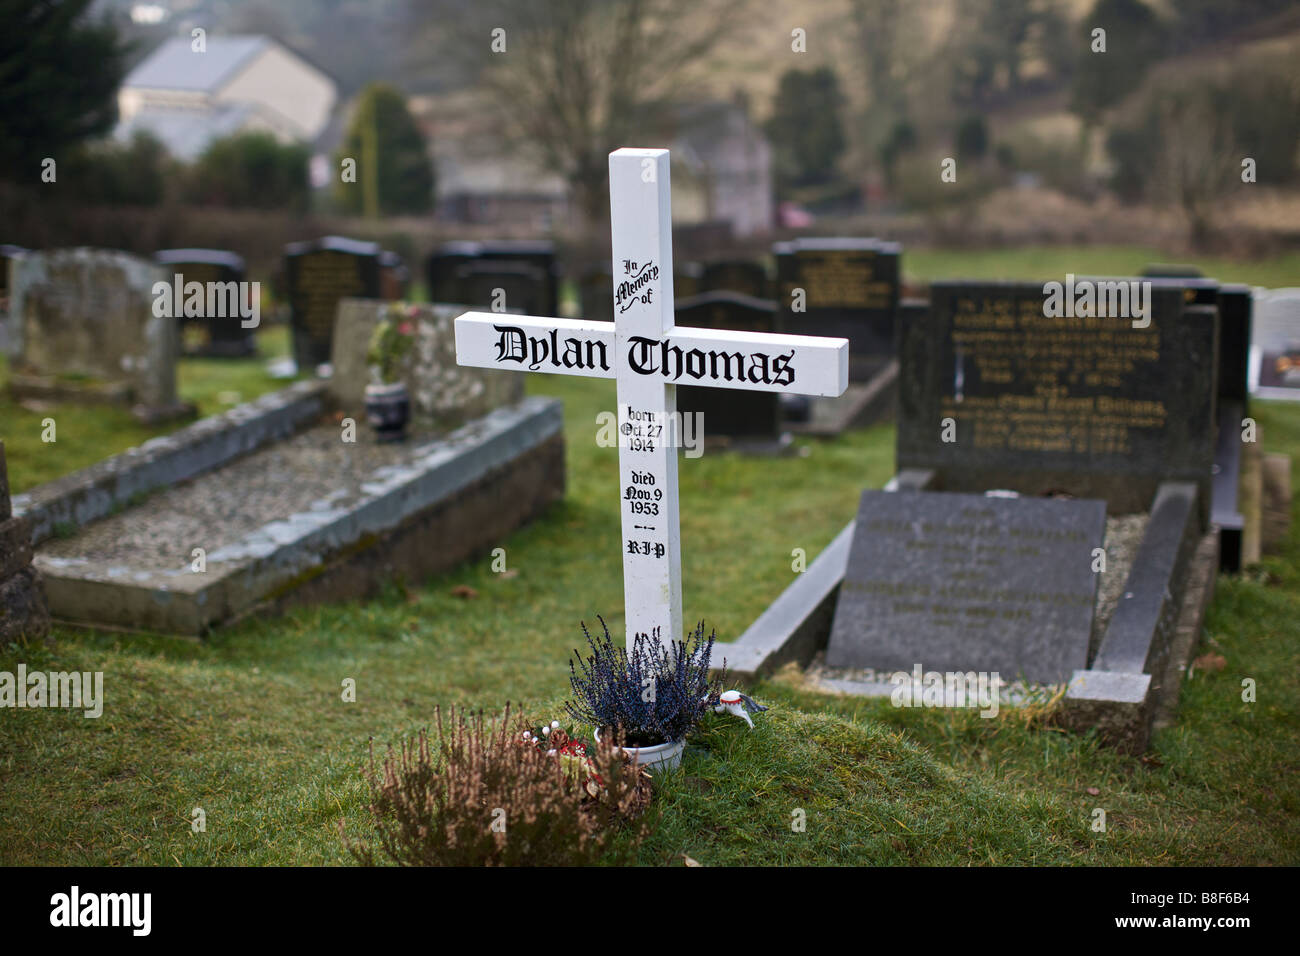 Dylan Thomas grave at St Martins Church in Laugharne Dyfed Wales - Stock Image